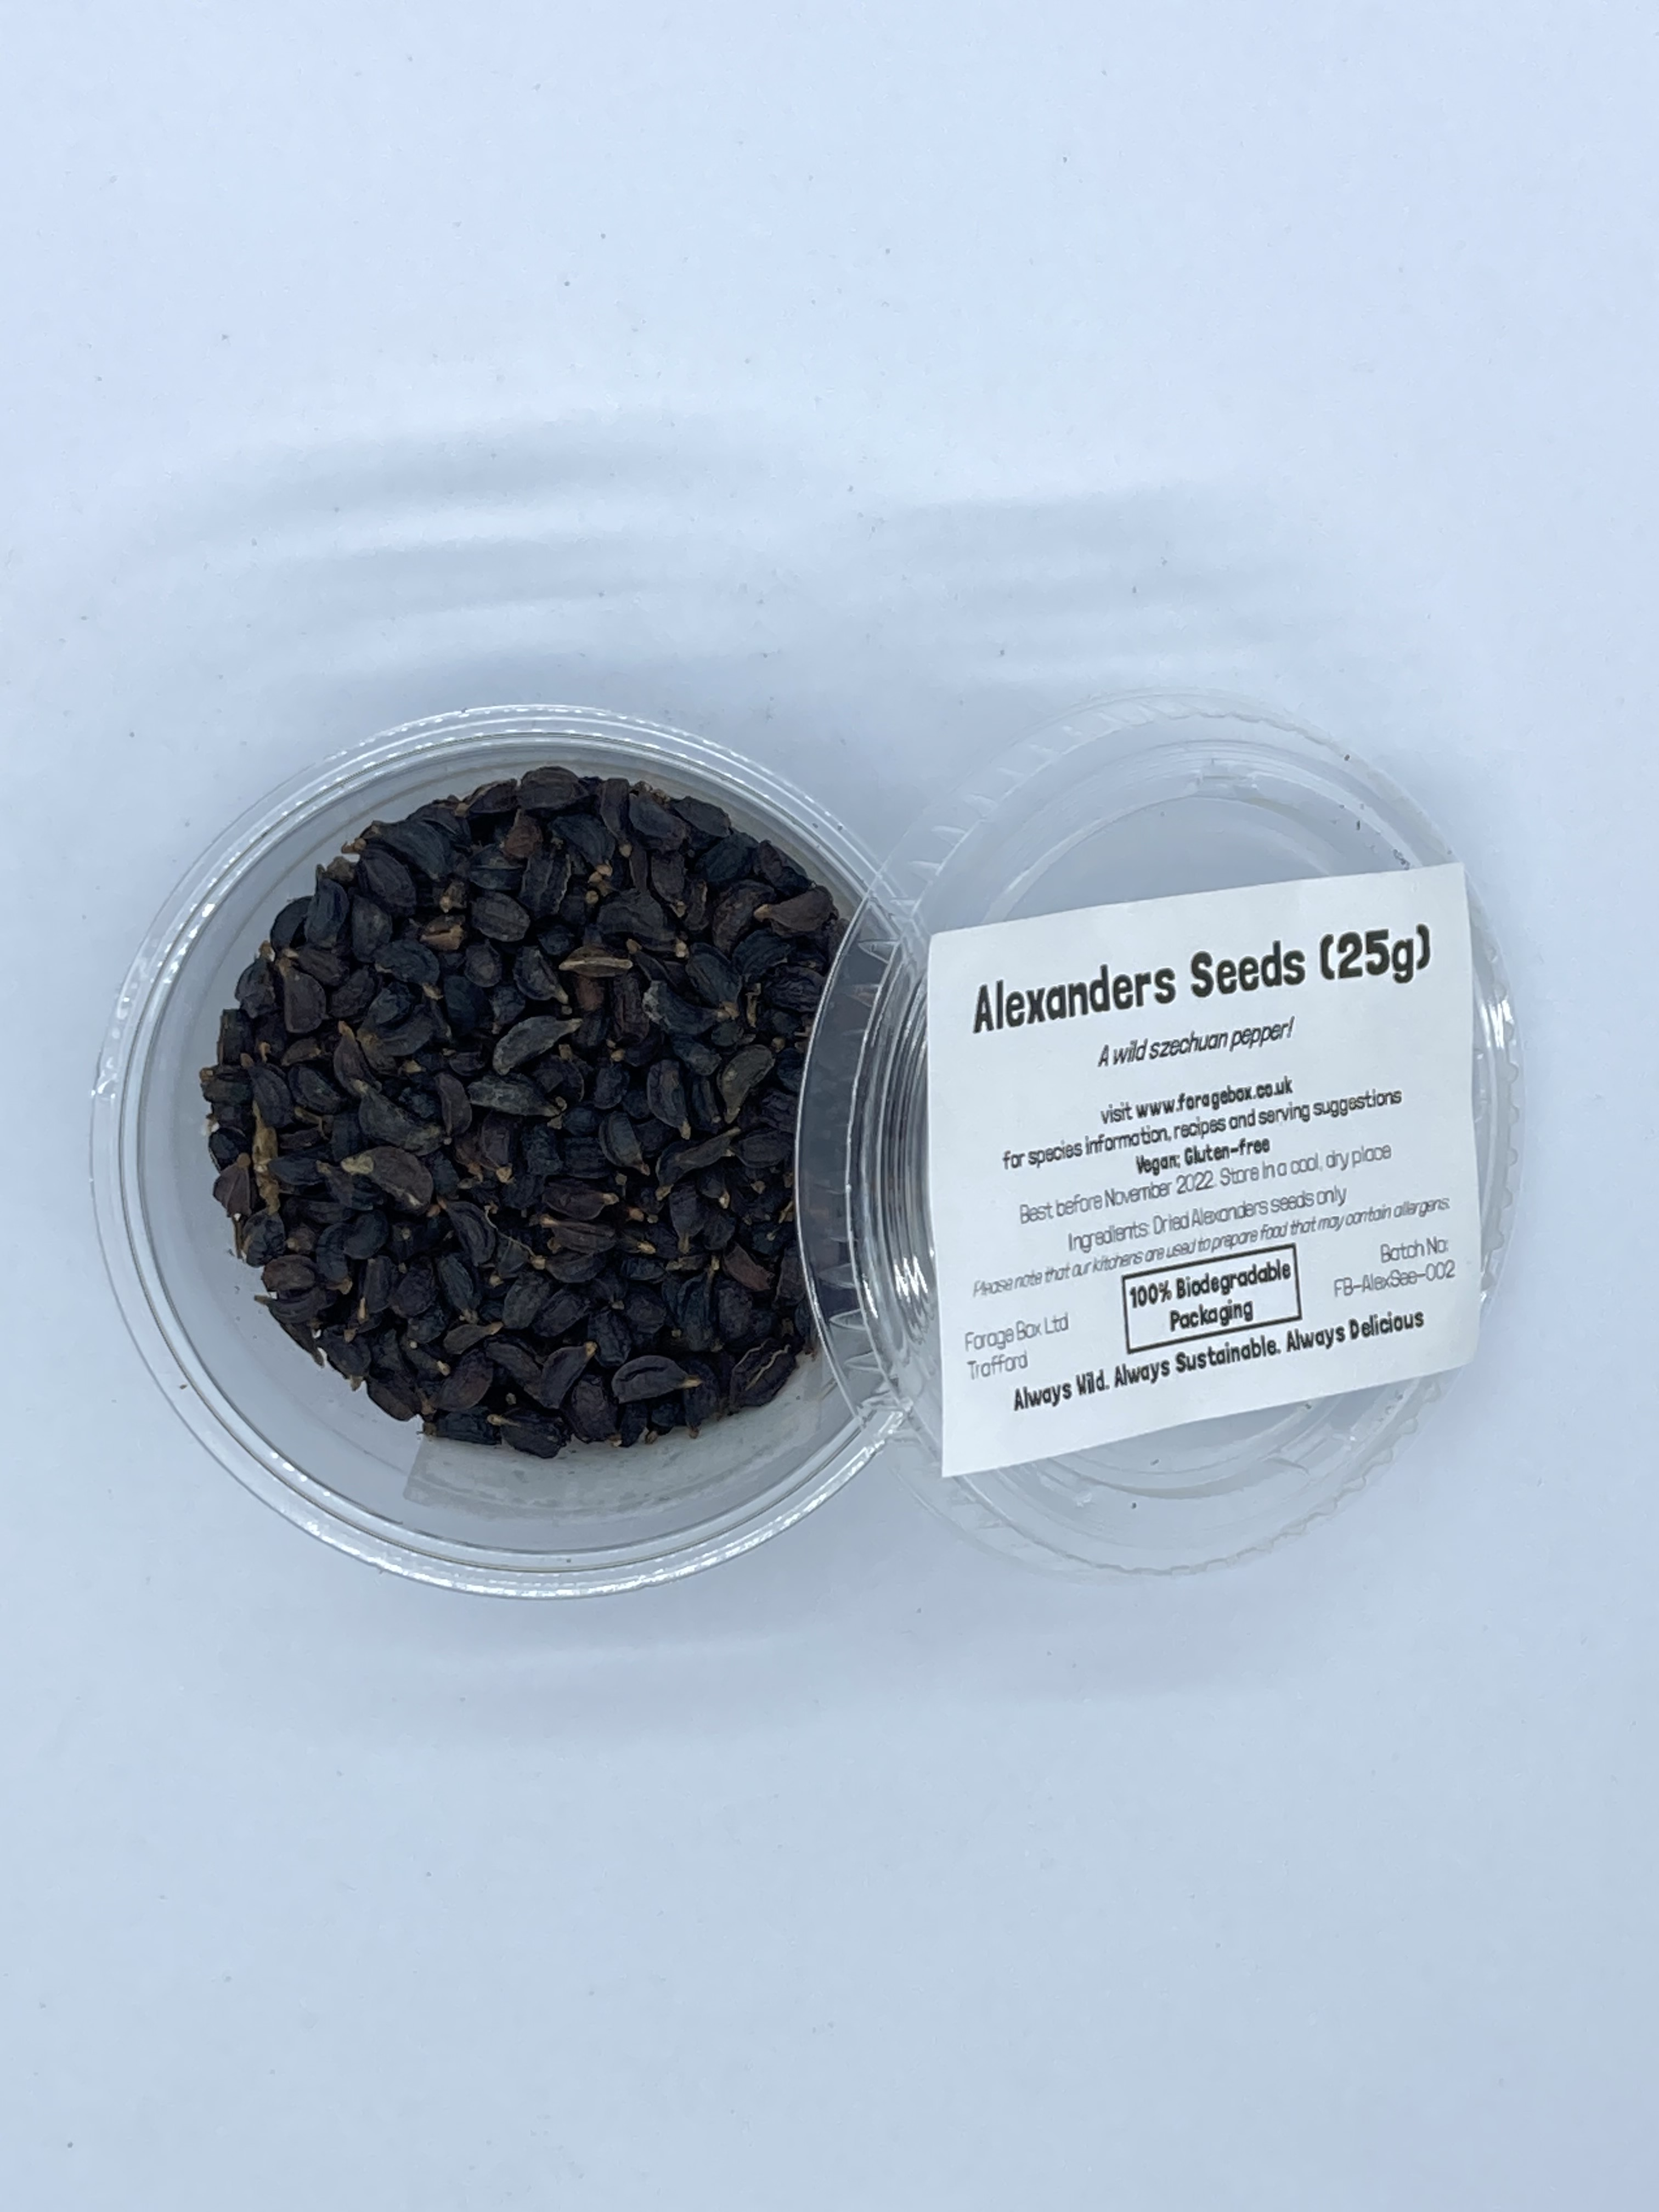 Dried Alexanders Seeds